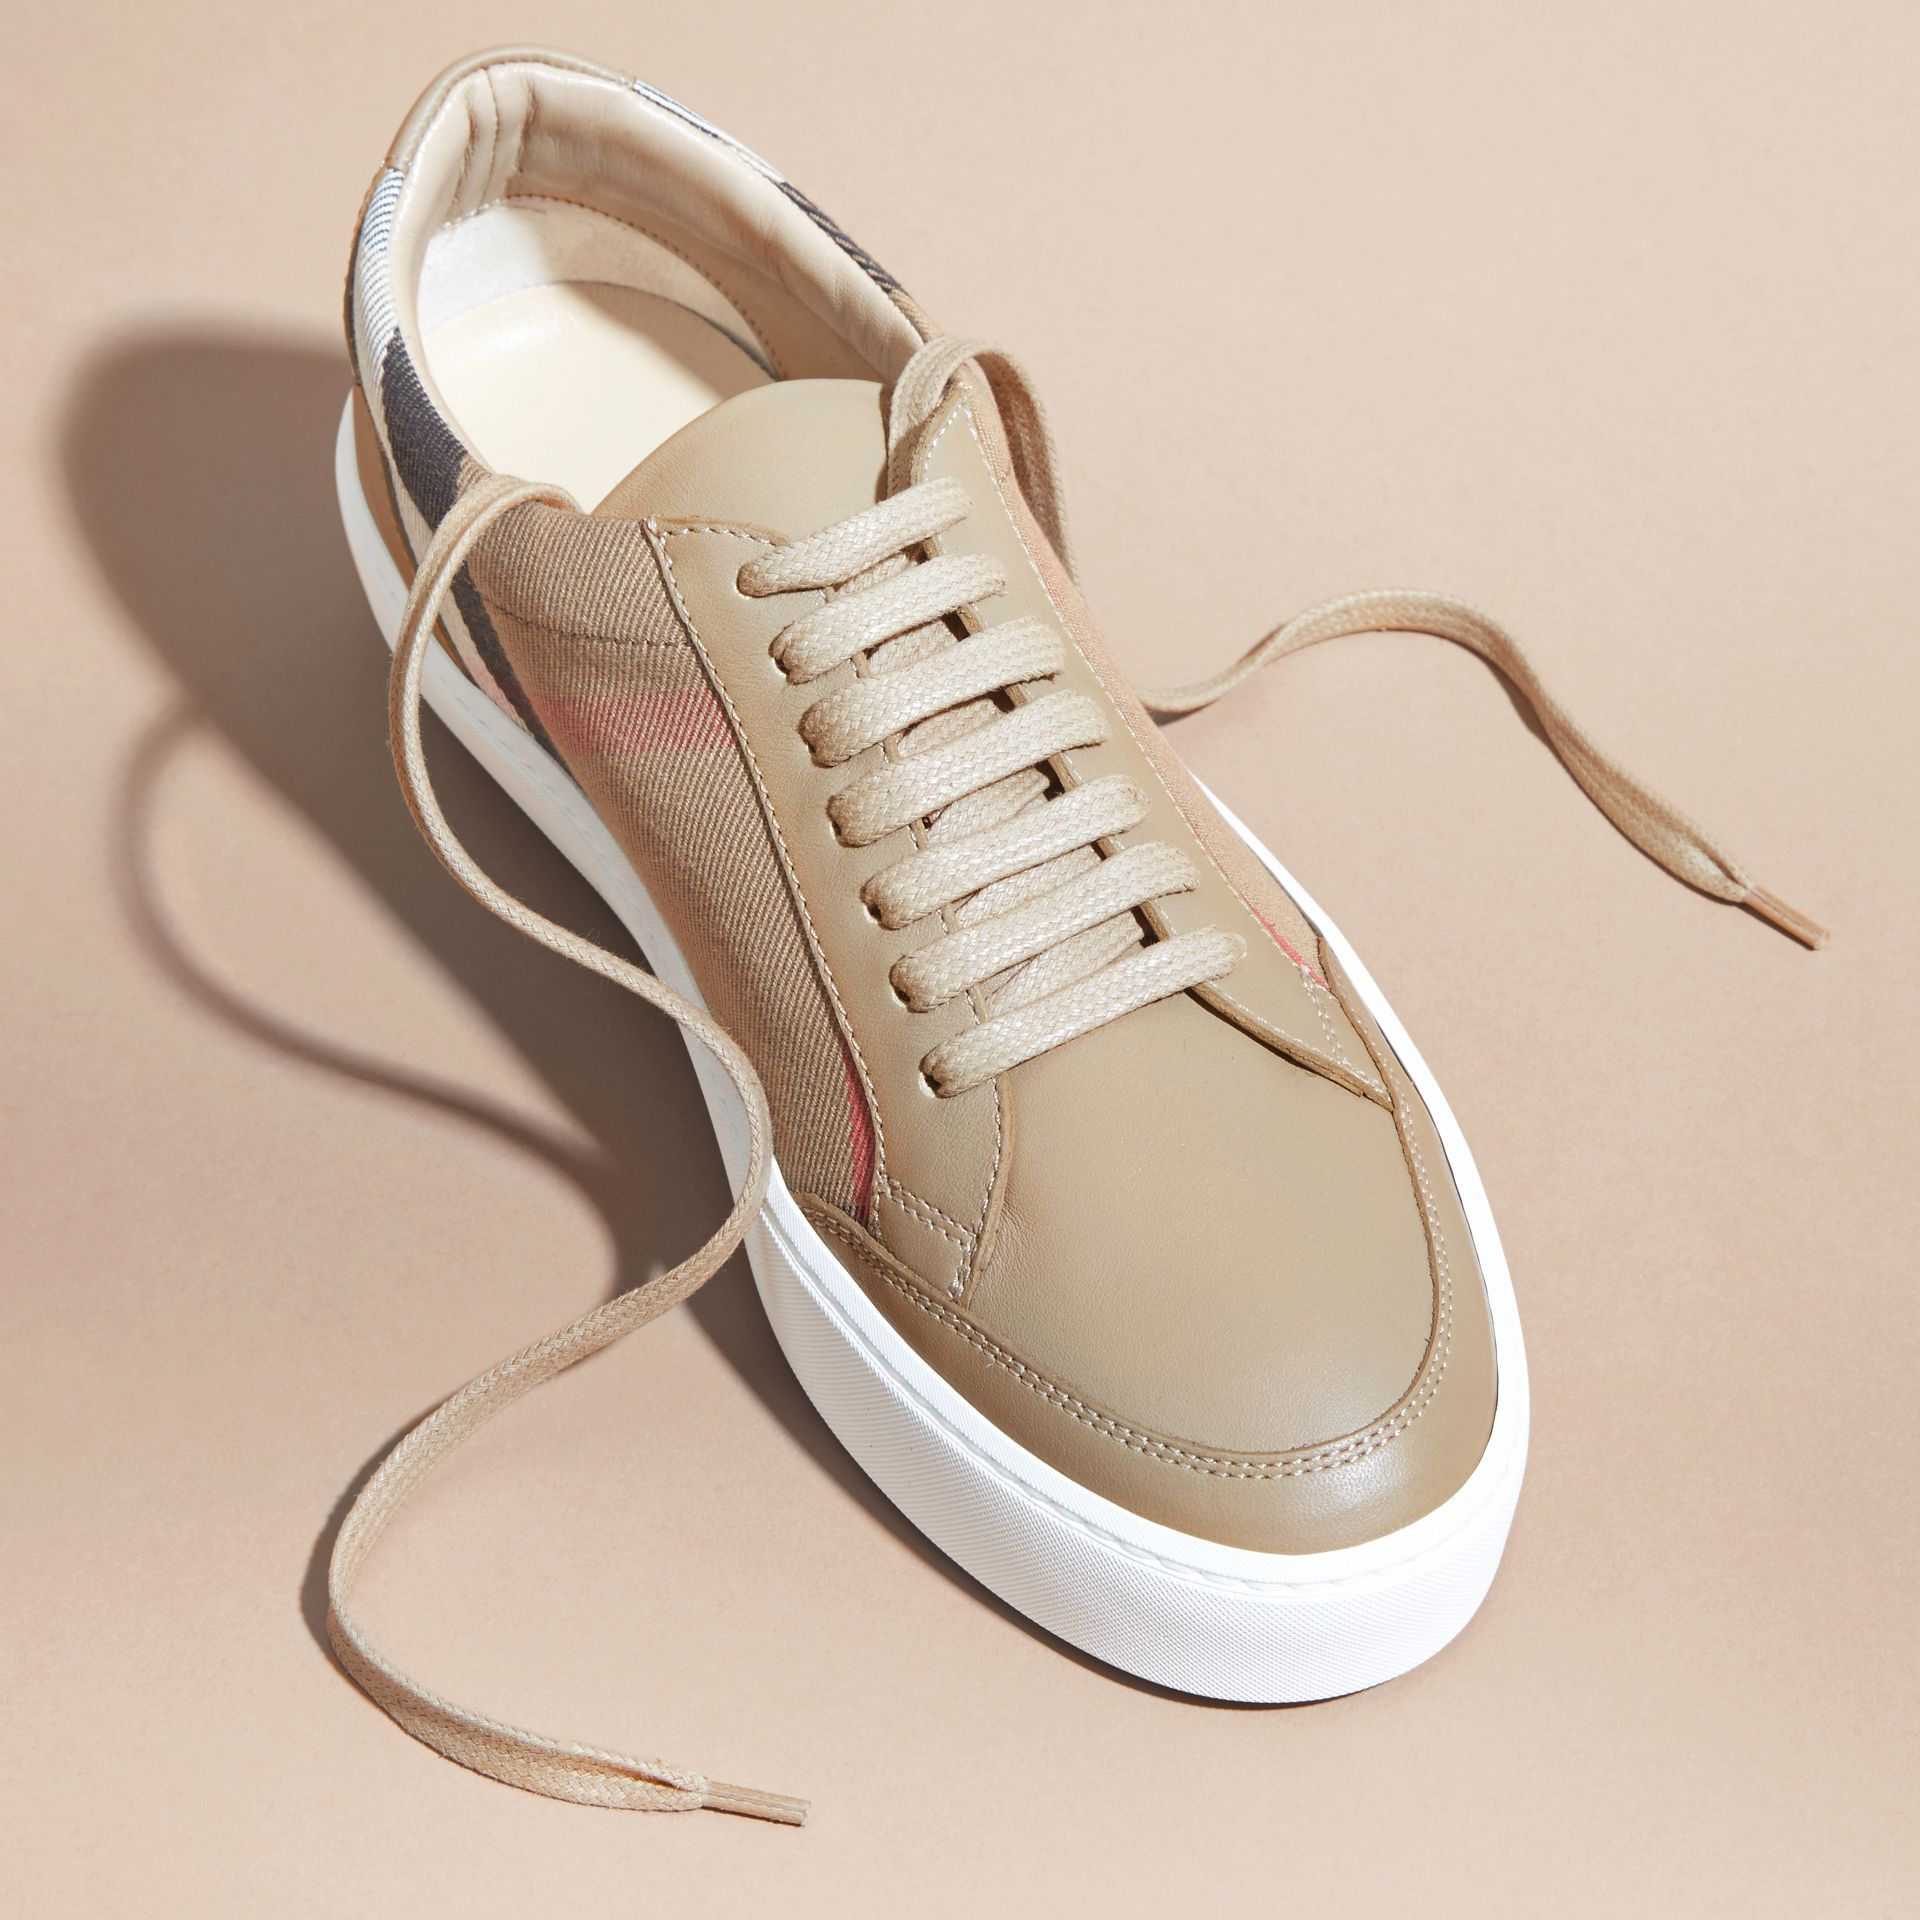 House check/ nude Check Detail Leather Sneakers House Check/ Nude - gallery image 3